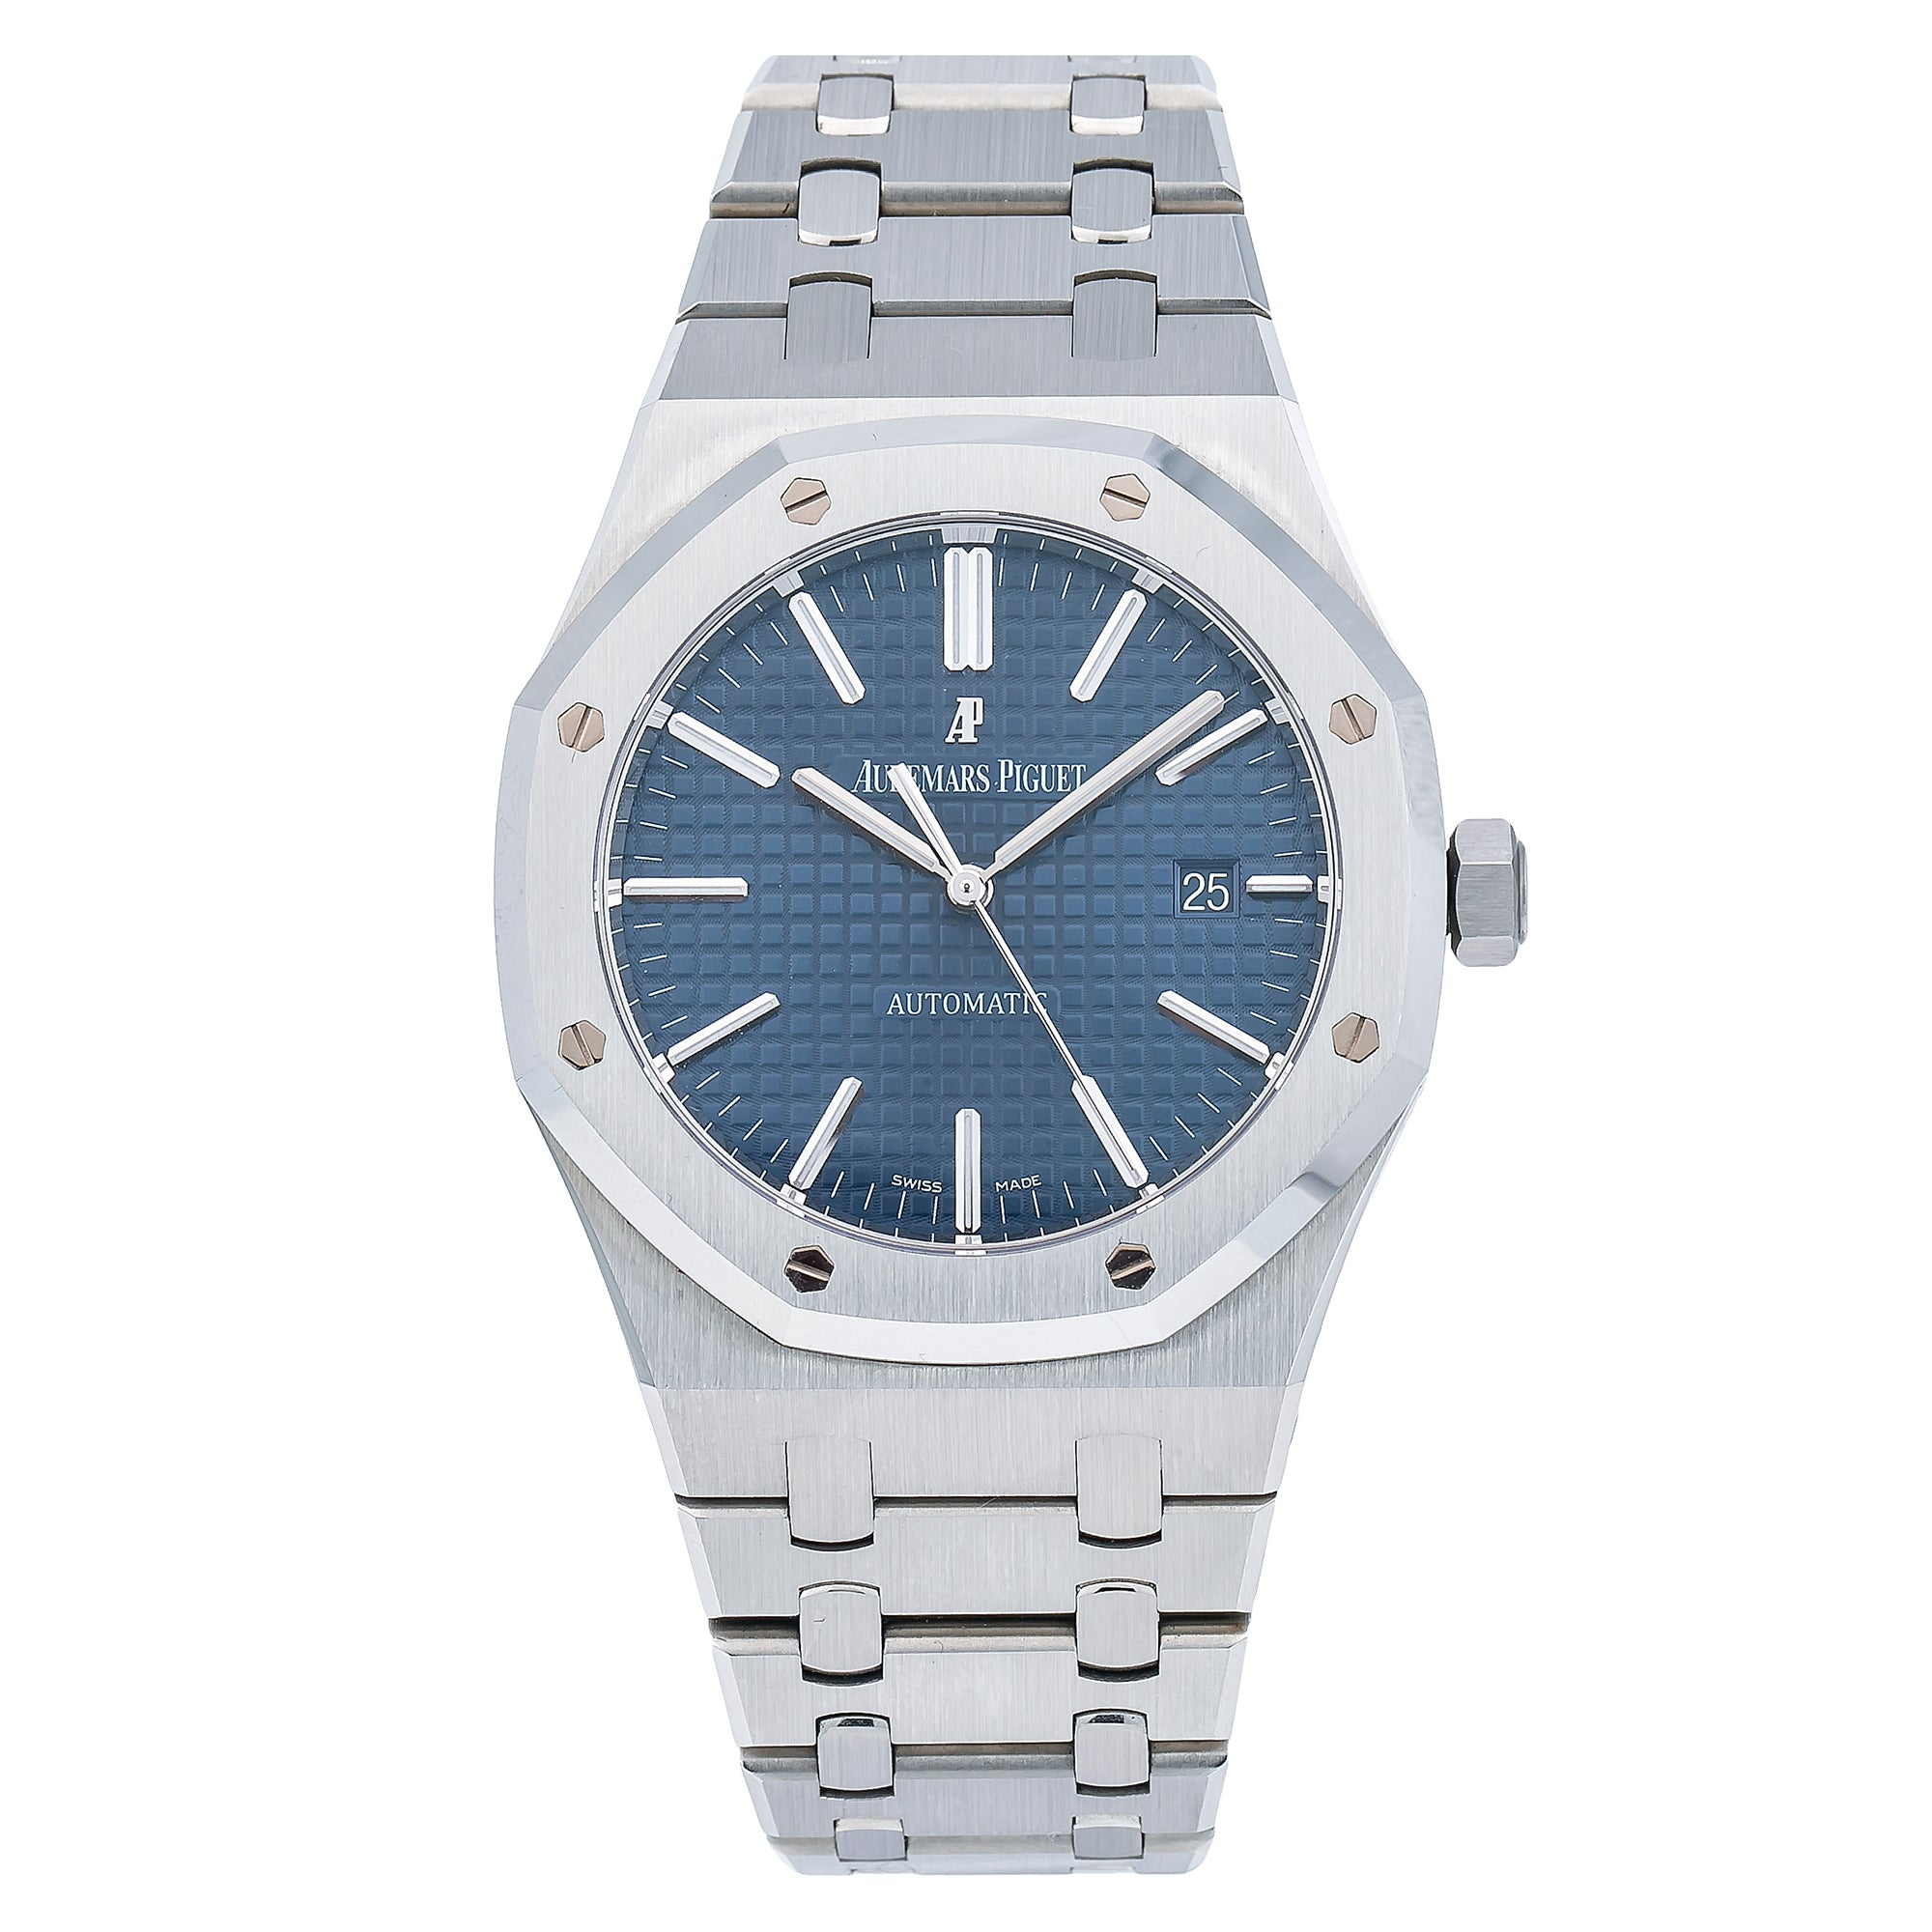 Audemars Piguet Royal Oak Selfwinding 15400ST 41MM Blue Dial With Stainless Steel Bracelet